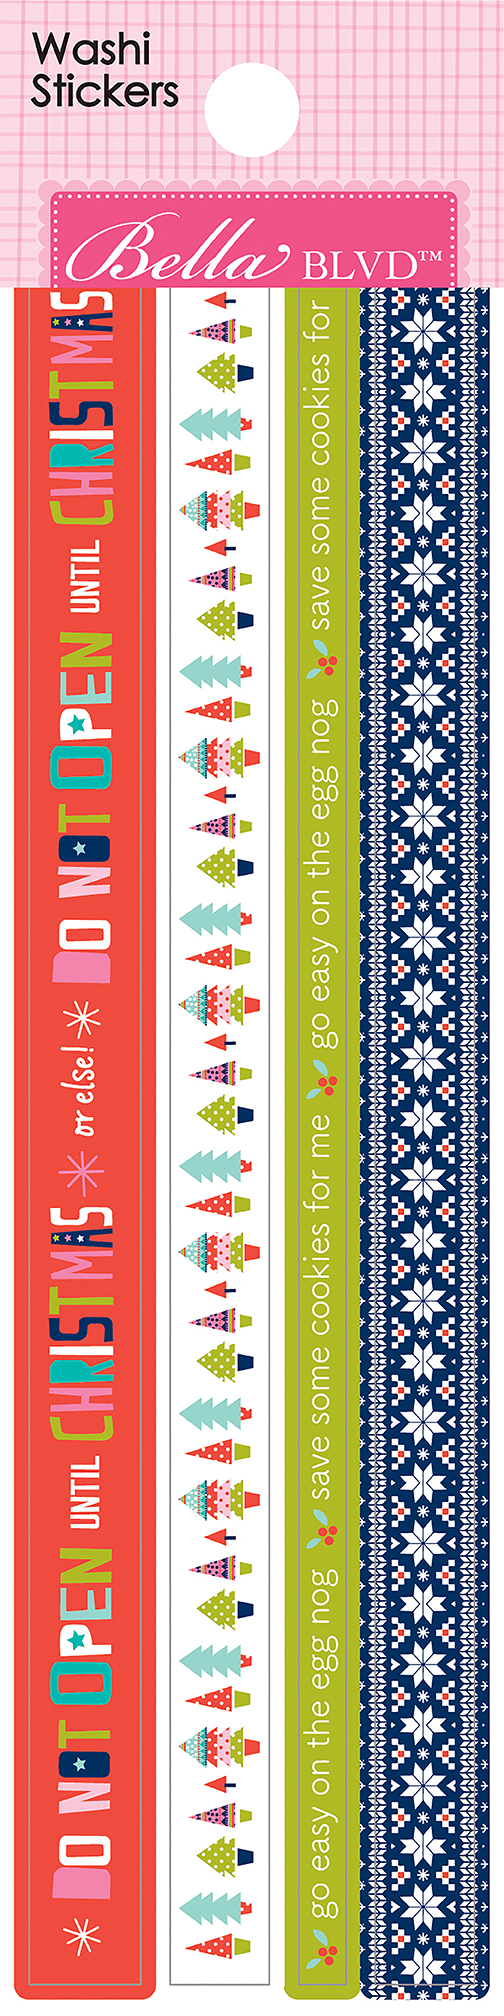 1329_WASHI_STICKERS_FRONT